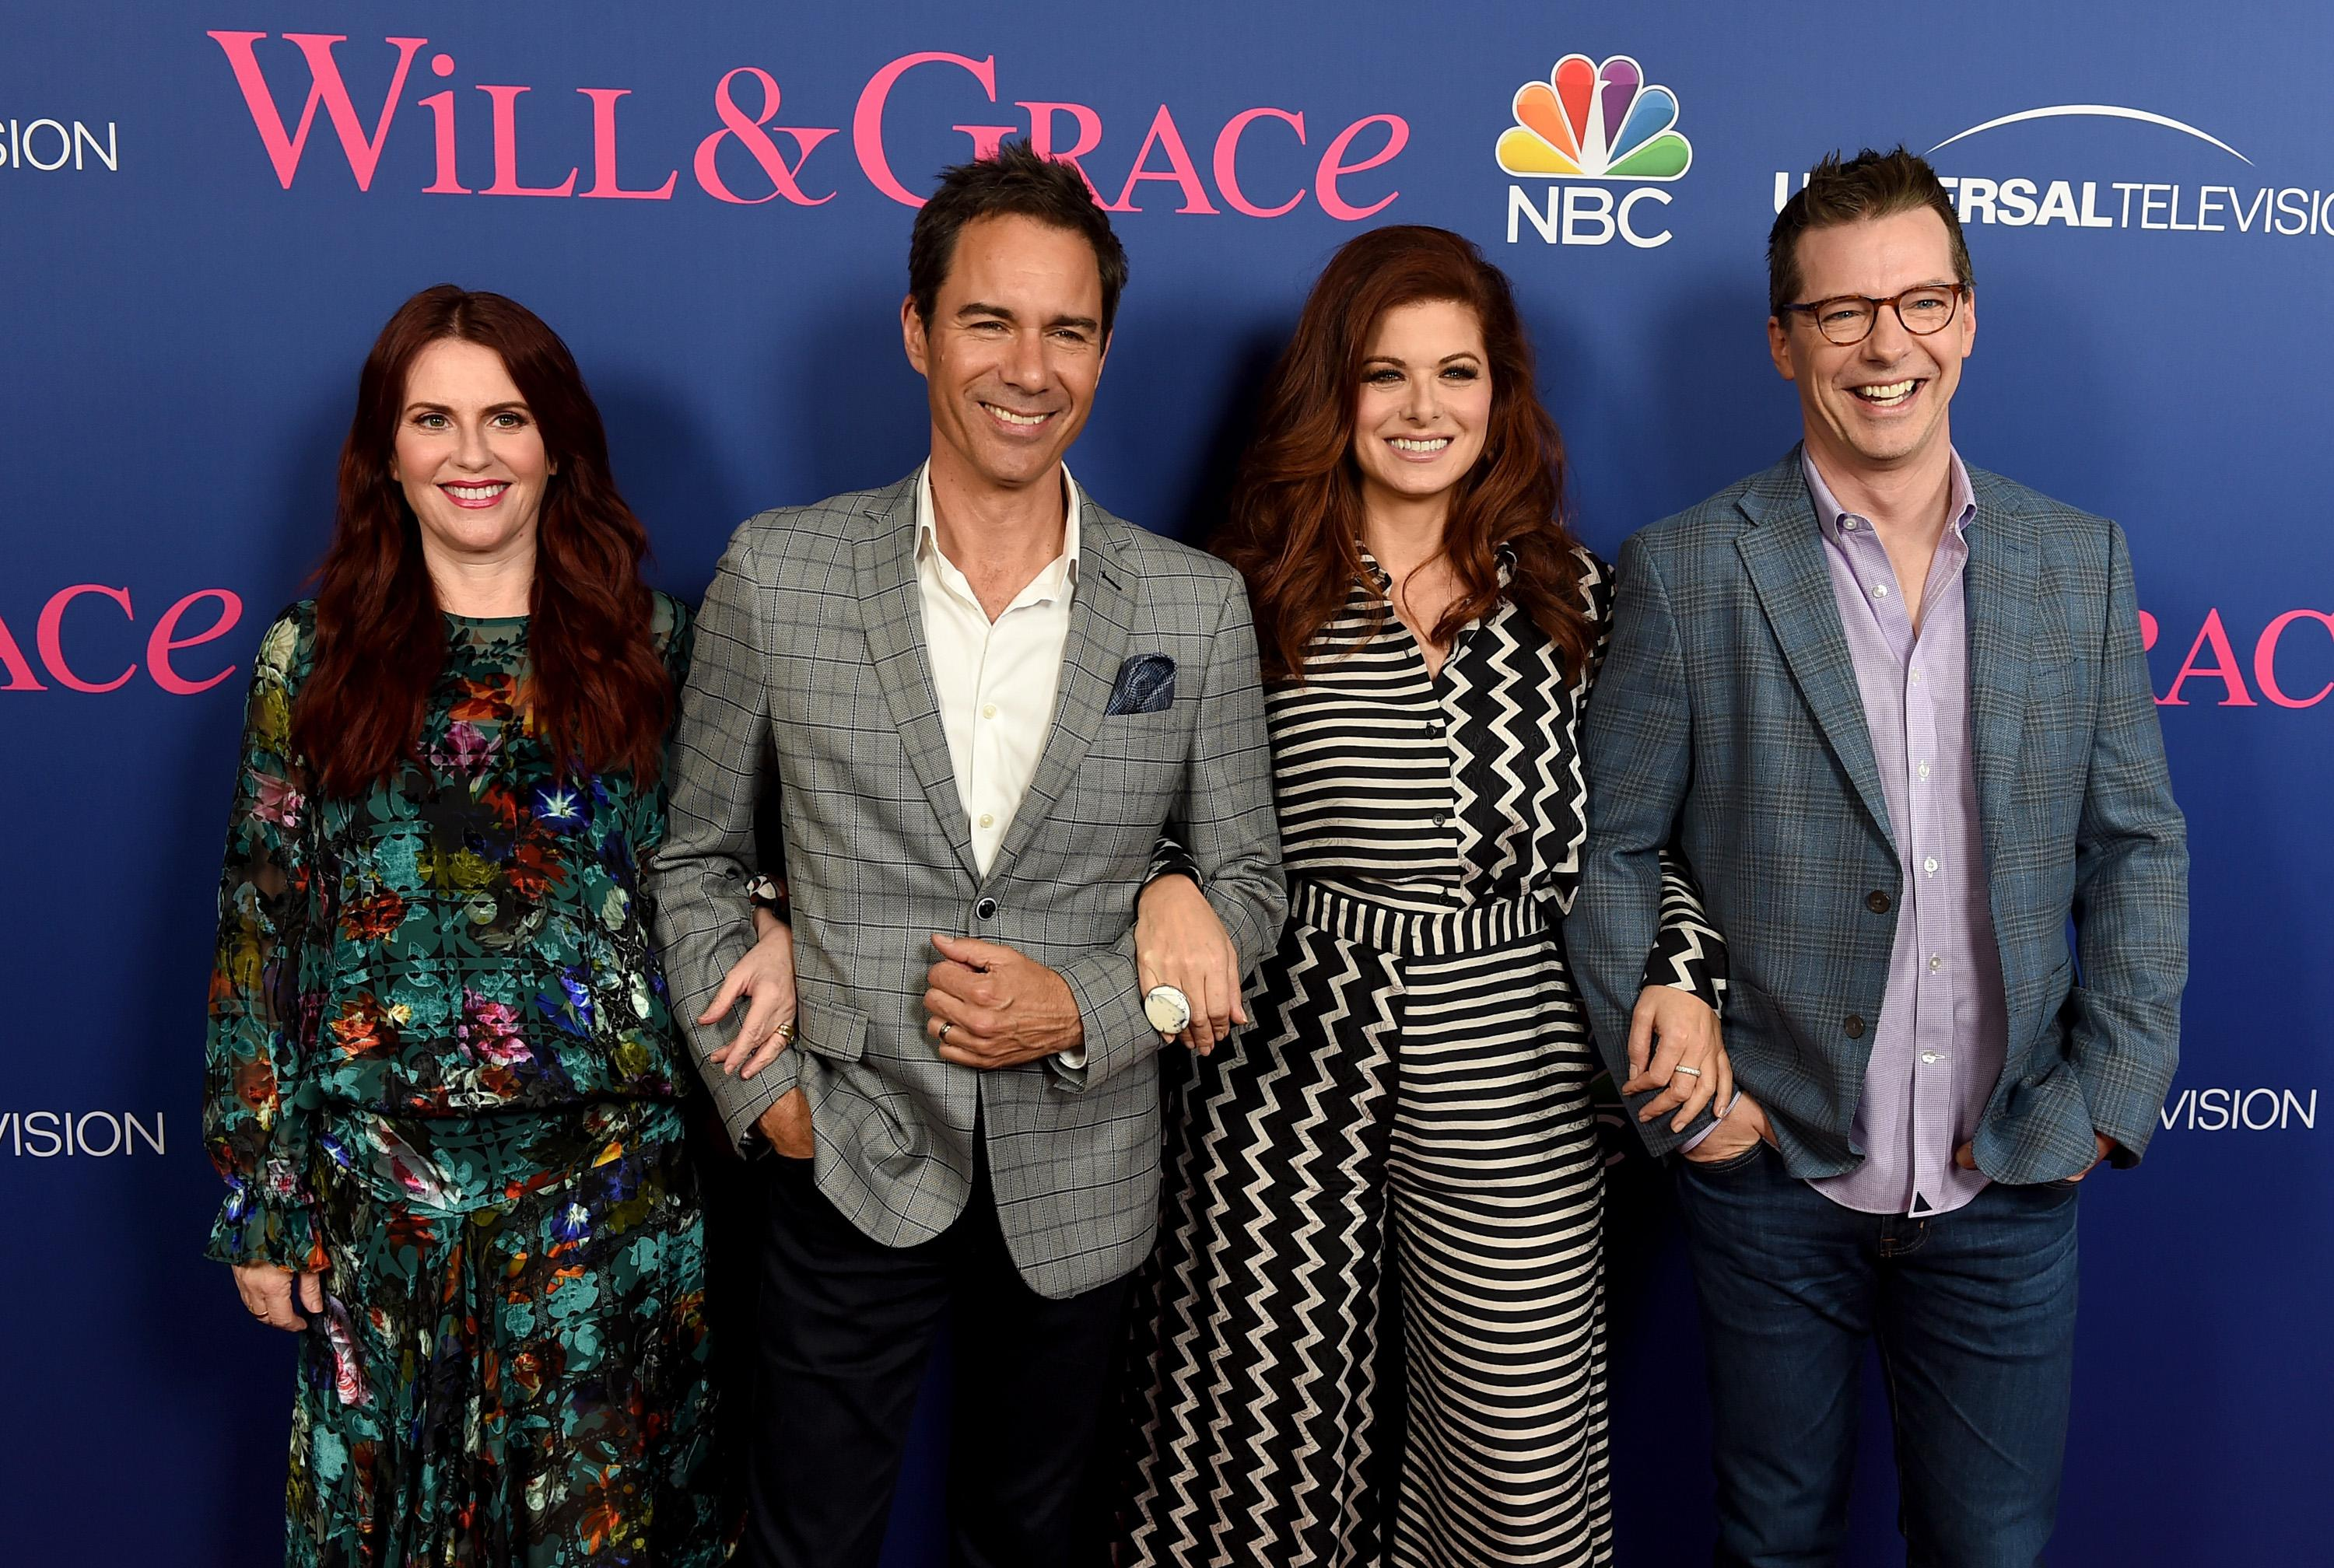 """LOS ANGELES, CA - JUNE 09: (L-R) Actors Megan Mullally, Eric McCormack, Debra Messing and Sean Hayes arrive at NBC's """"Will & Grace"""" FYC Event at the Harmony Gold Theatre on June 9, 2018 in Los Angeles, California. (Photo by Kevin Winter/Getty Images)"""